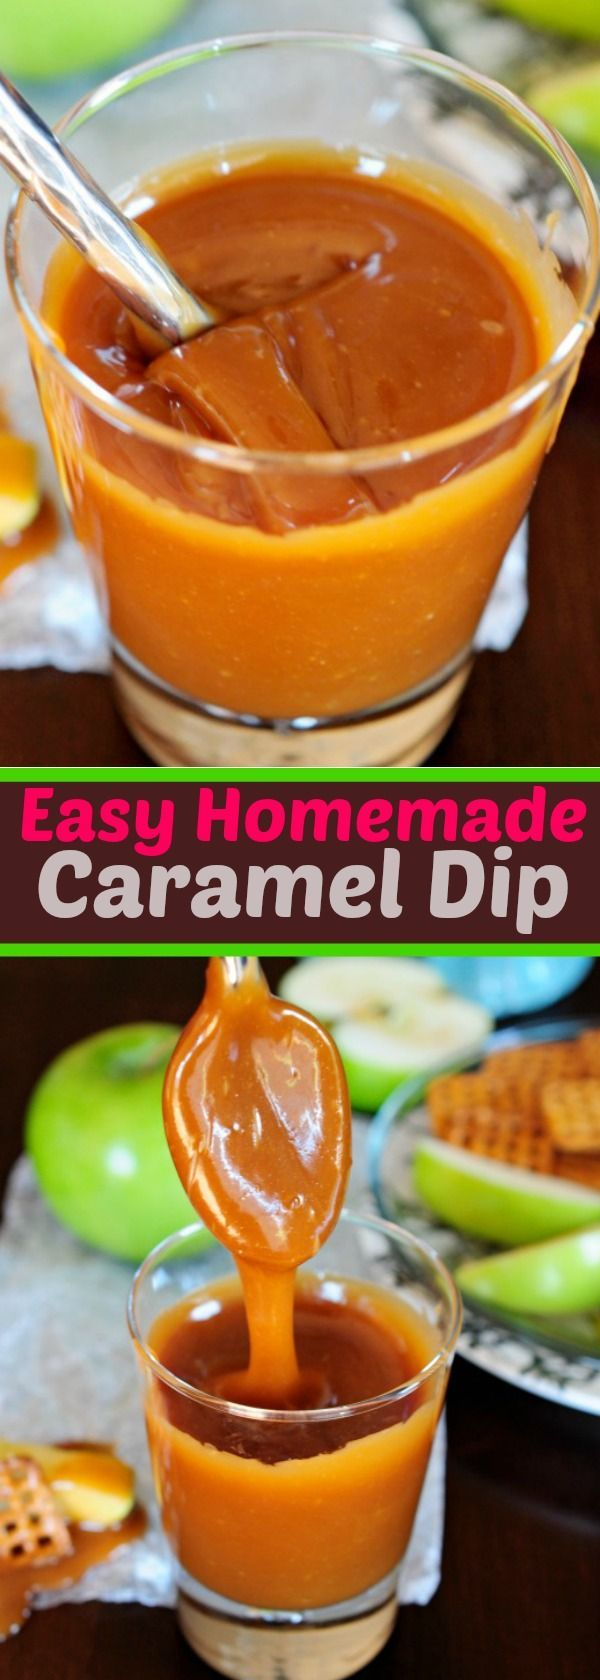 This is my go-to caramel dip recipe.  No additives and No candy thermometer needed!